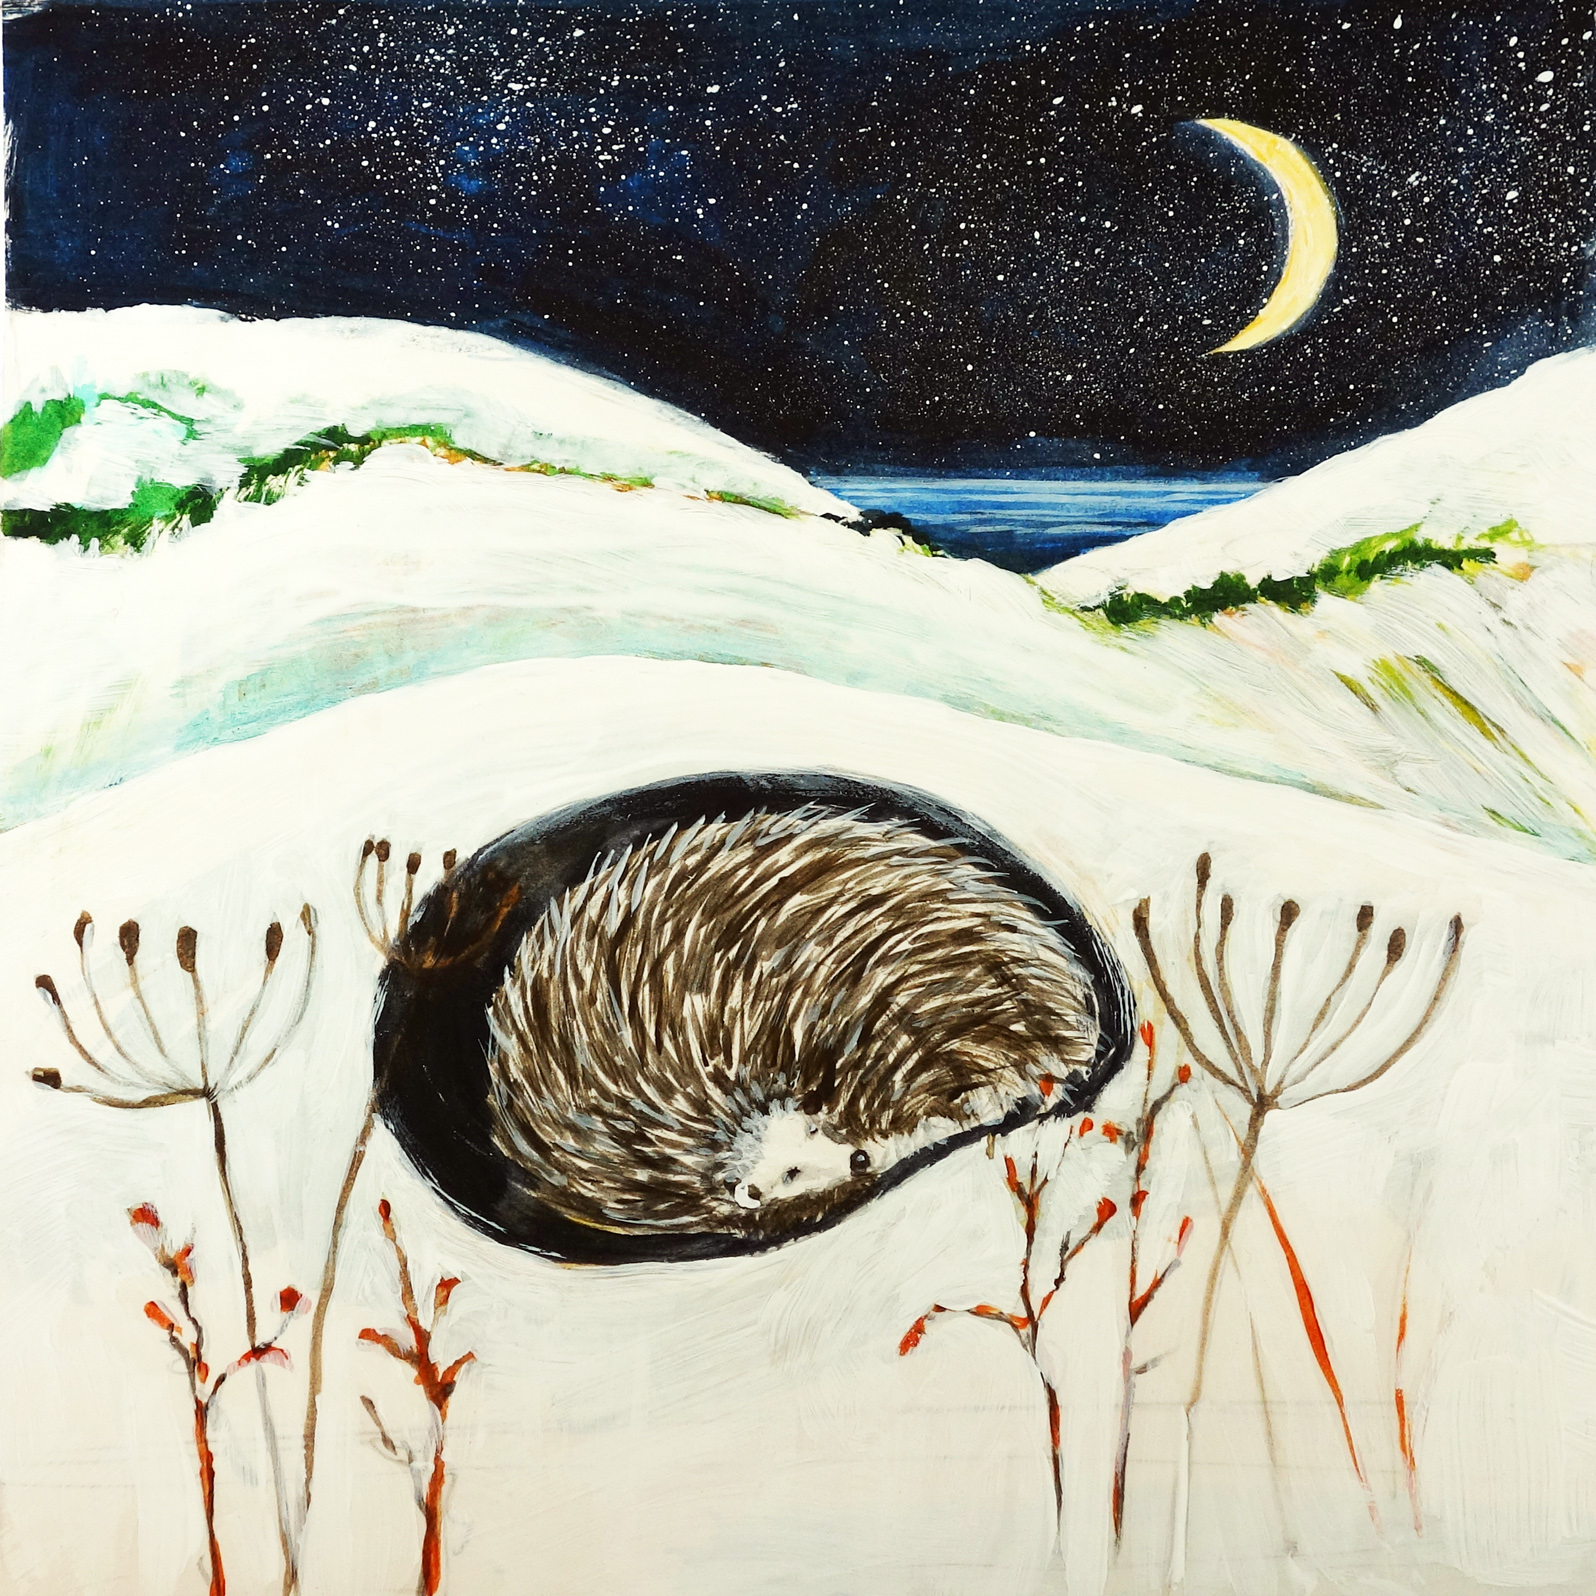 WINTER HEDGEHOG by Fran Slade